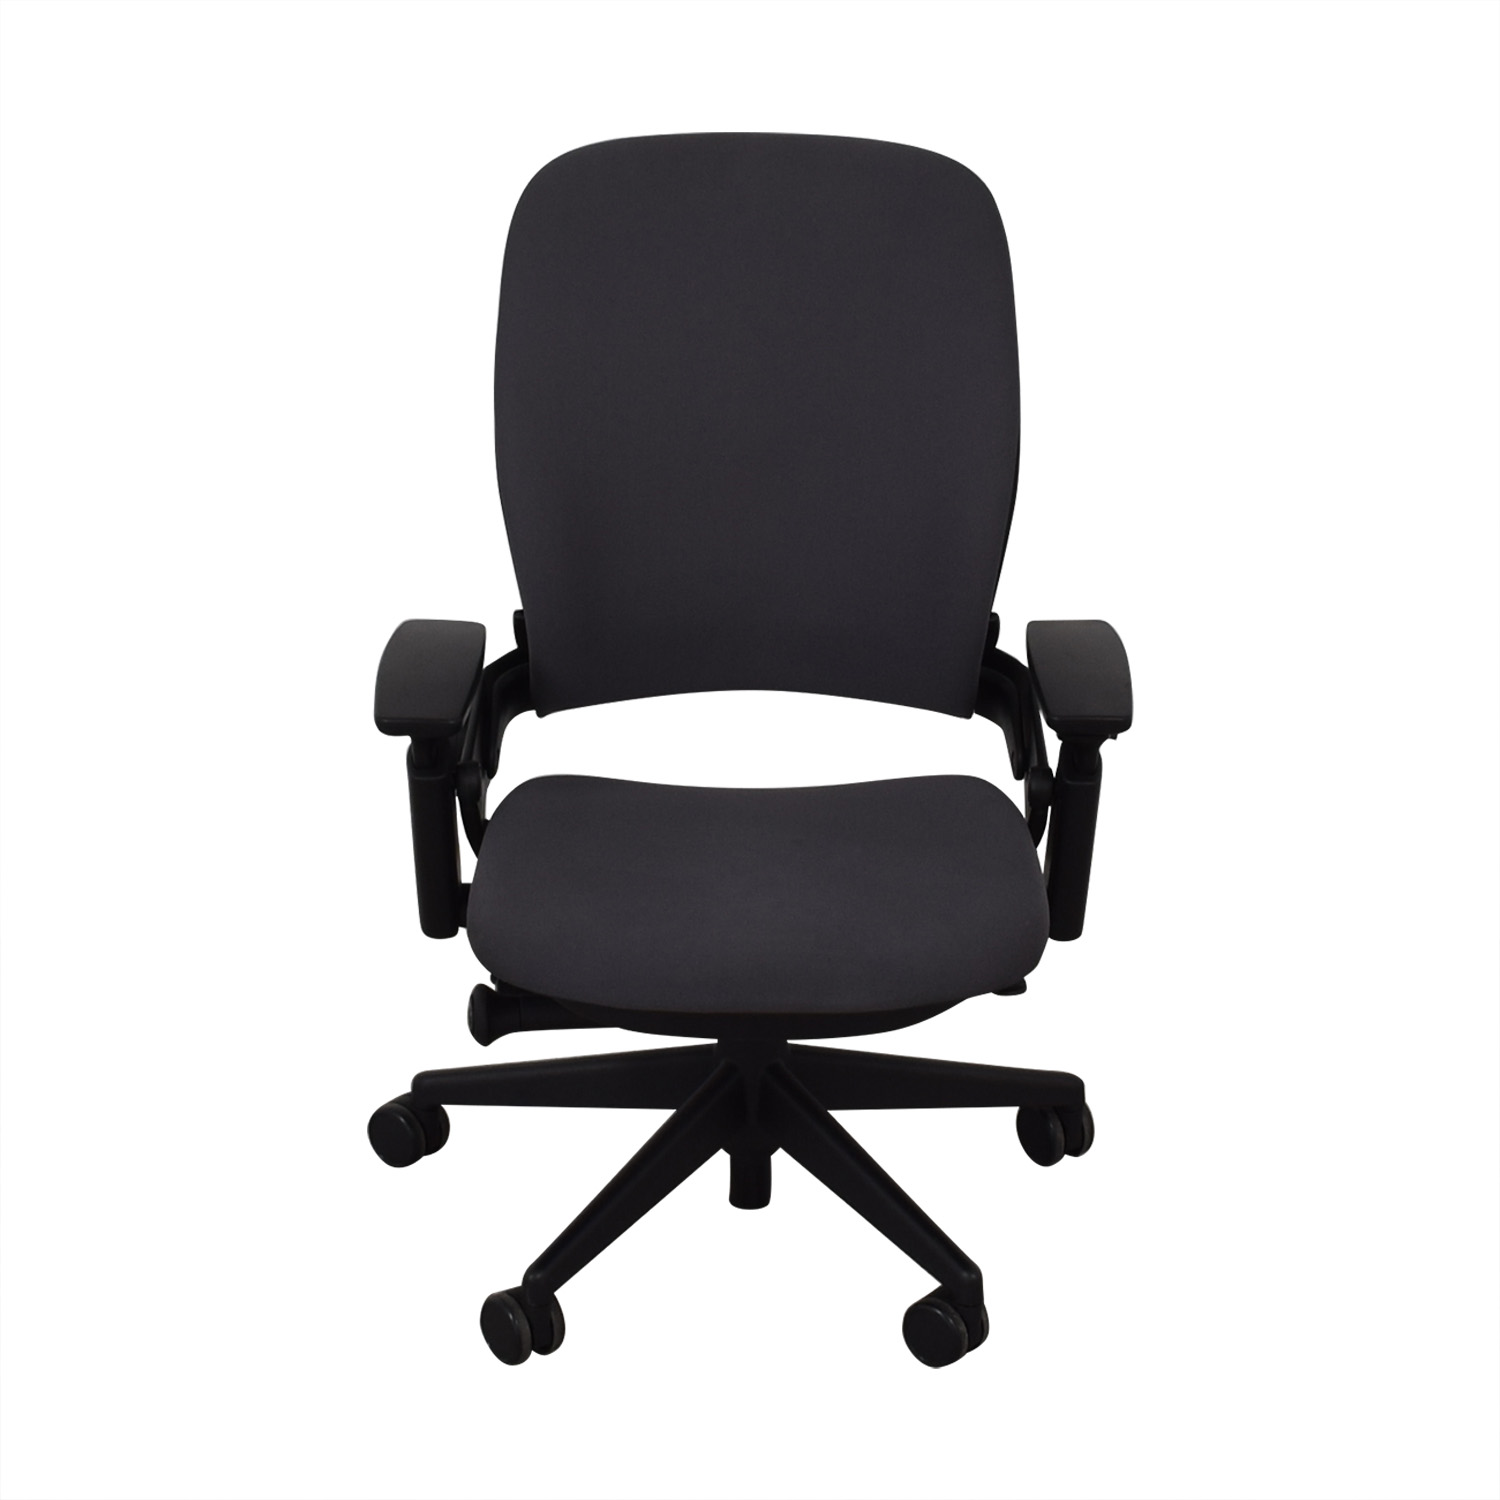 Steelcase Leap V2 Office Chair / Chairs